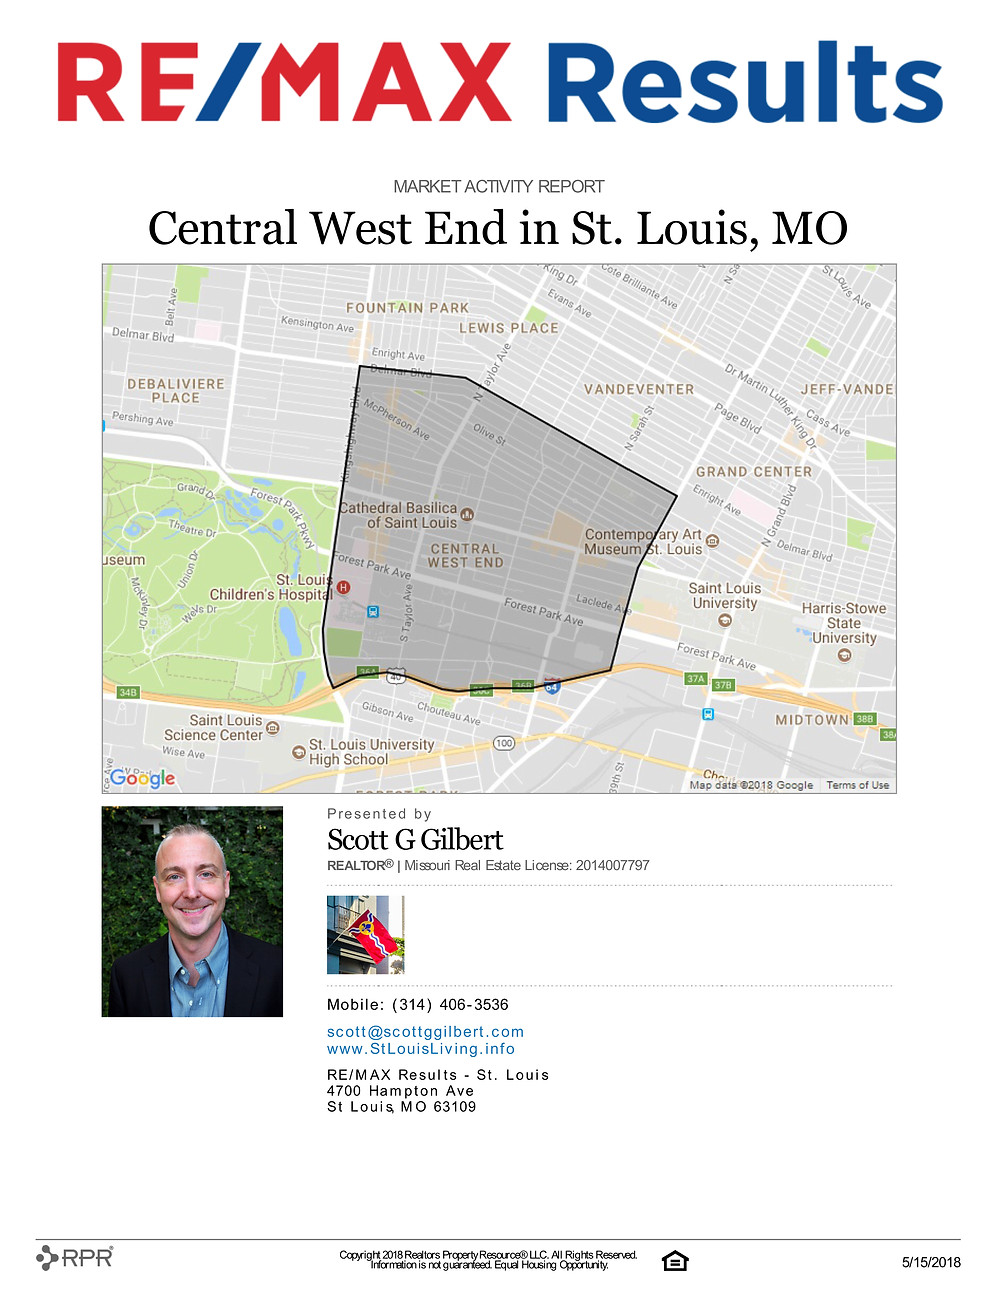 Central West End Real Estate Market Report